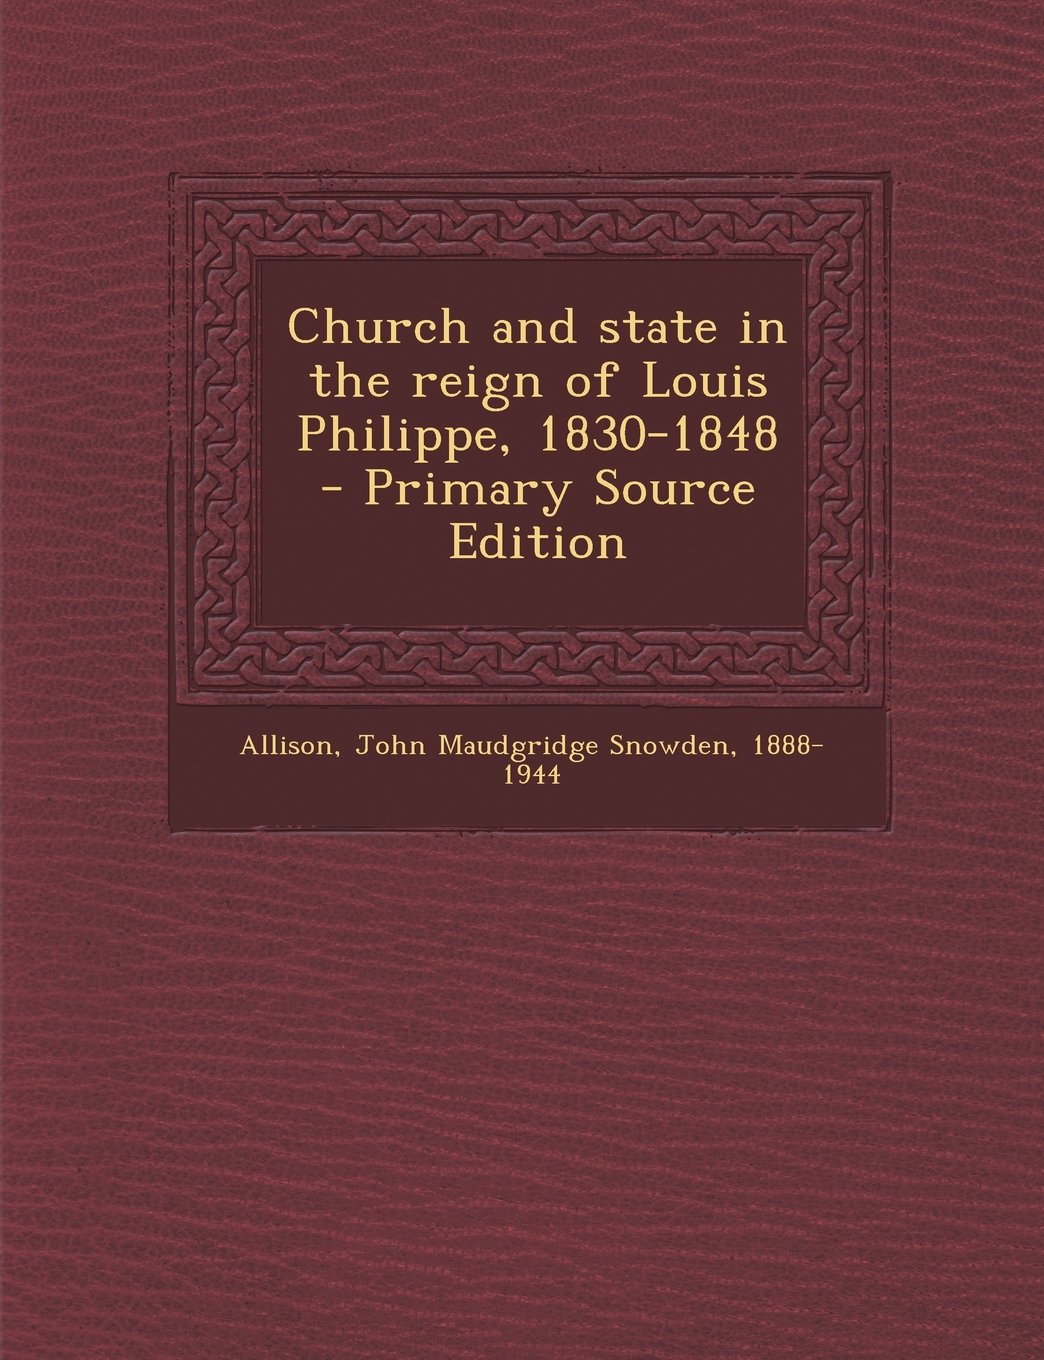 Download Church and state in the reign of Louis Philippe, 1830-1848 pdf